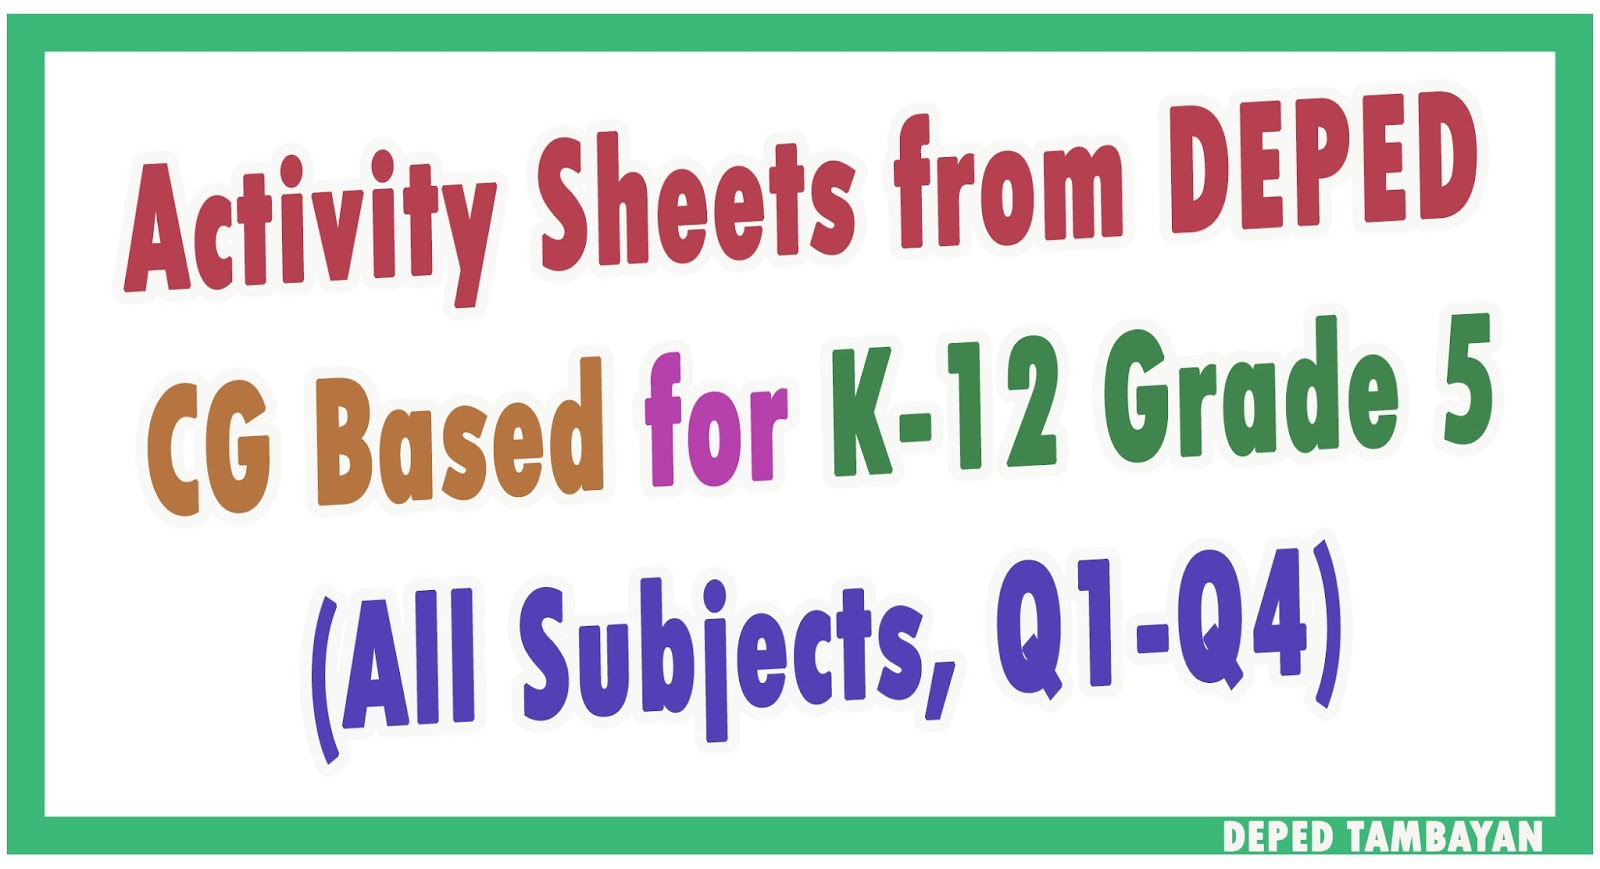 New Activity Sheets Cg Based For K 12 Grade 5 From Deped